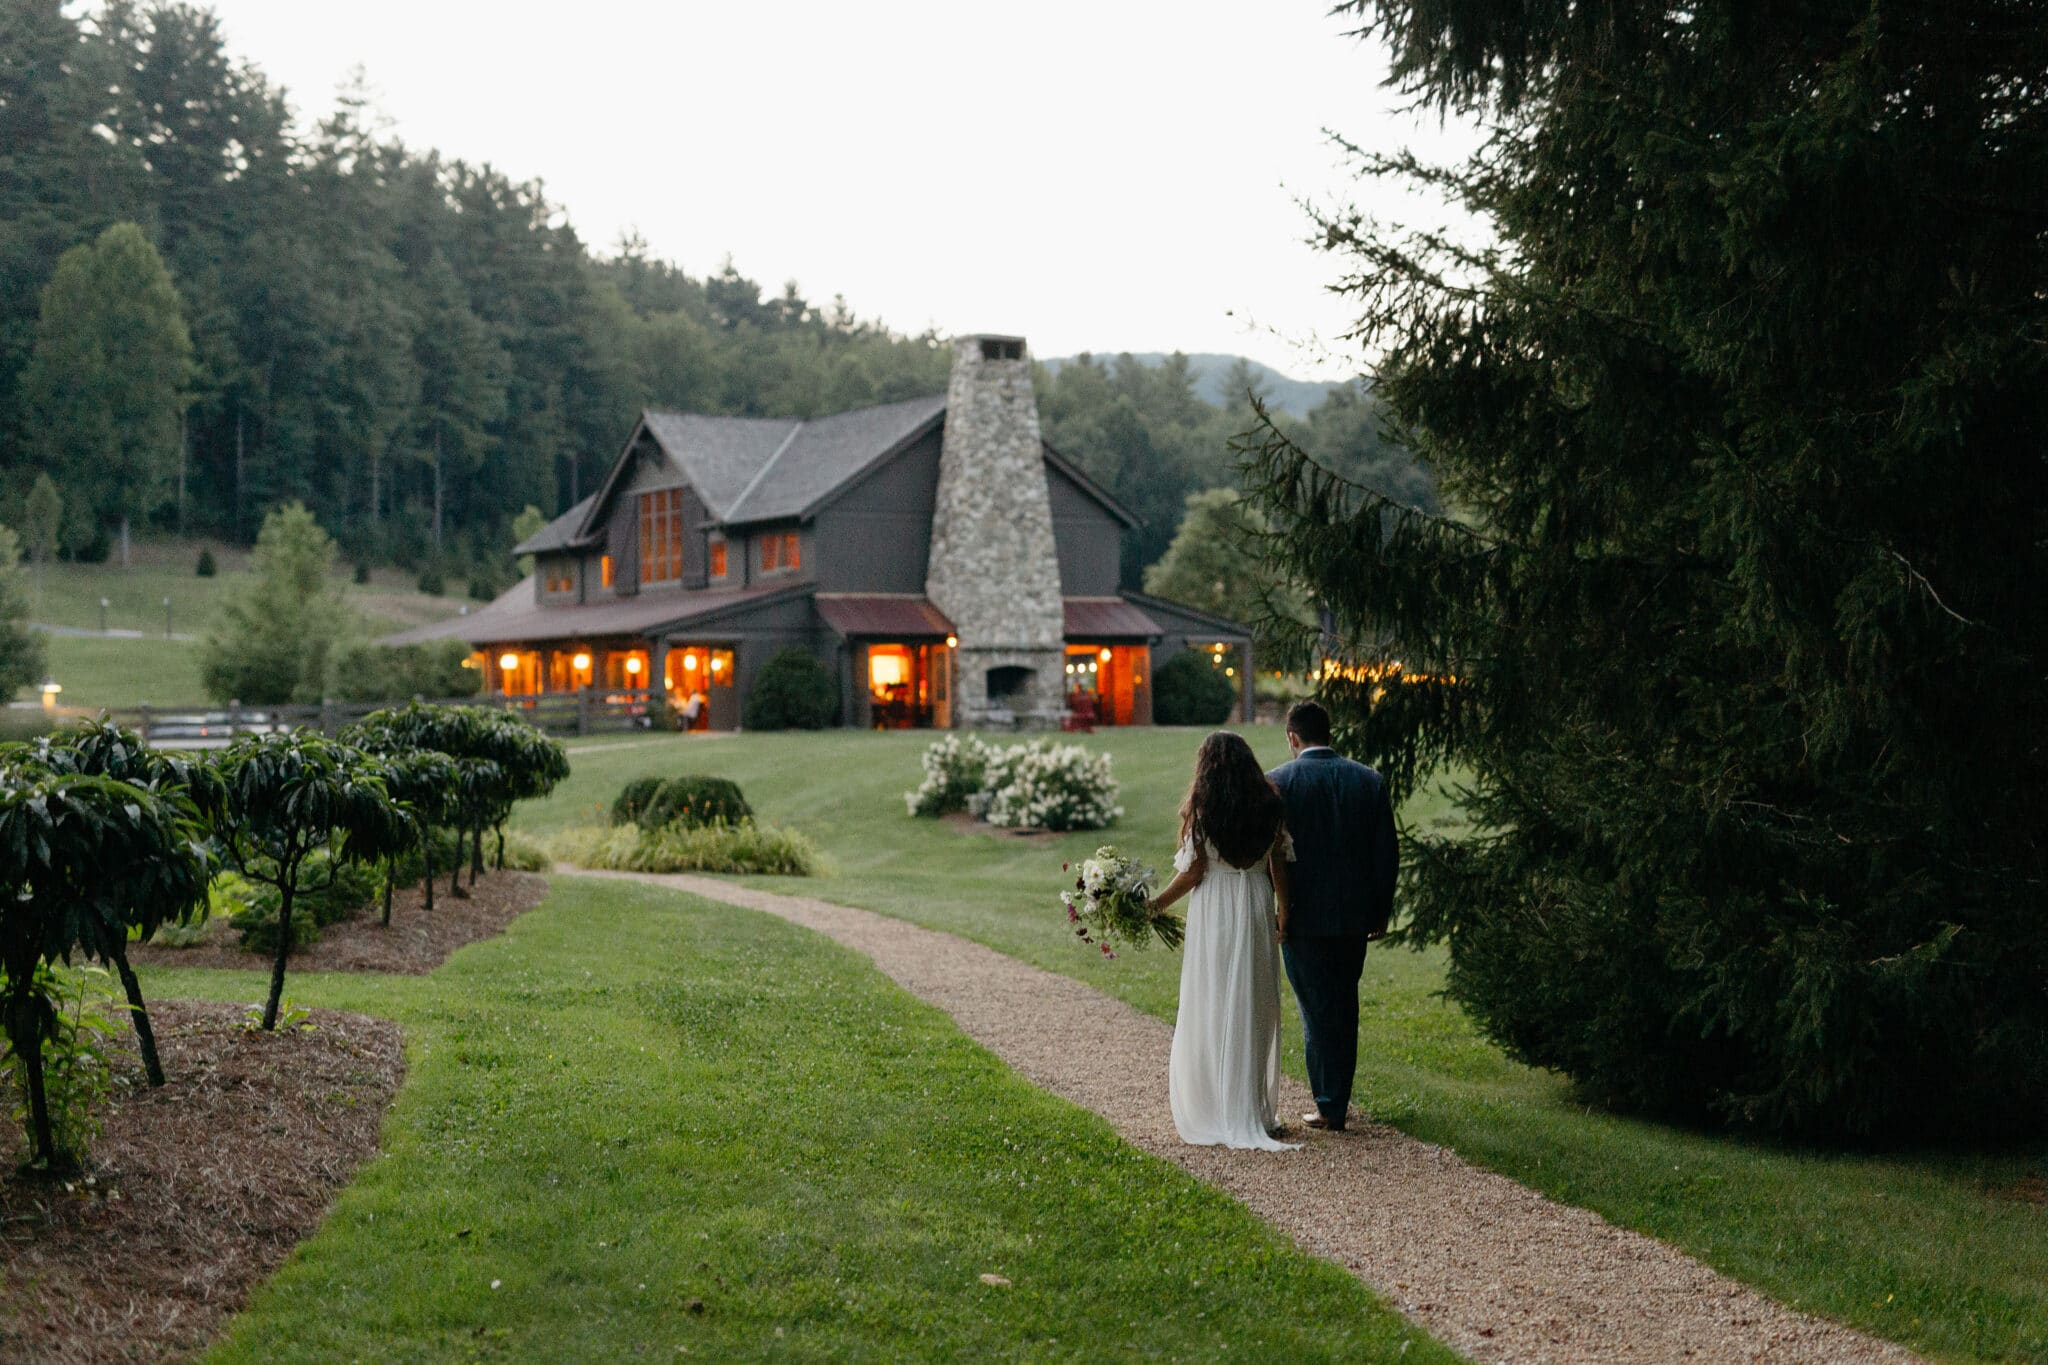 Canyon Kitchen at Lonesome Valley destination wedding venue